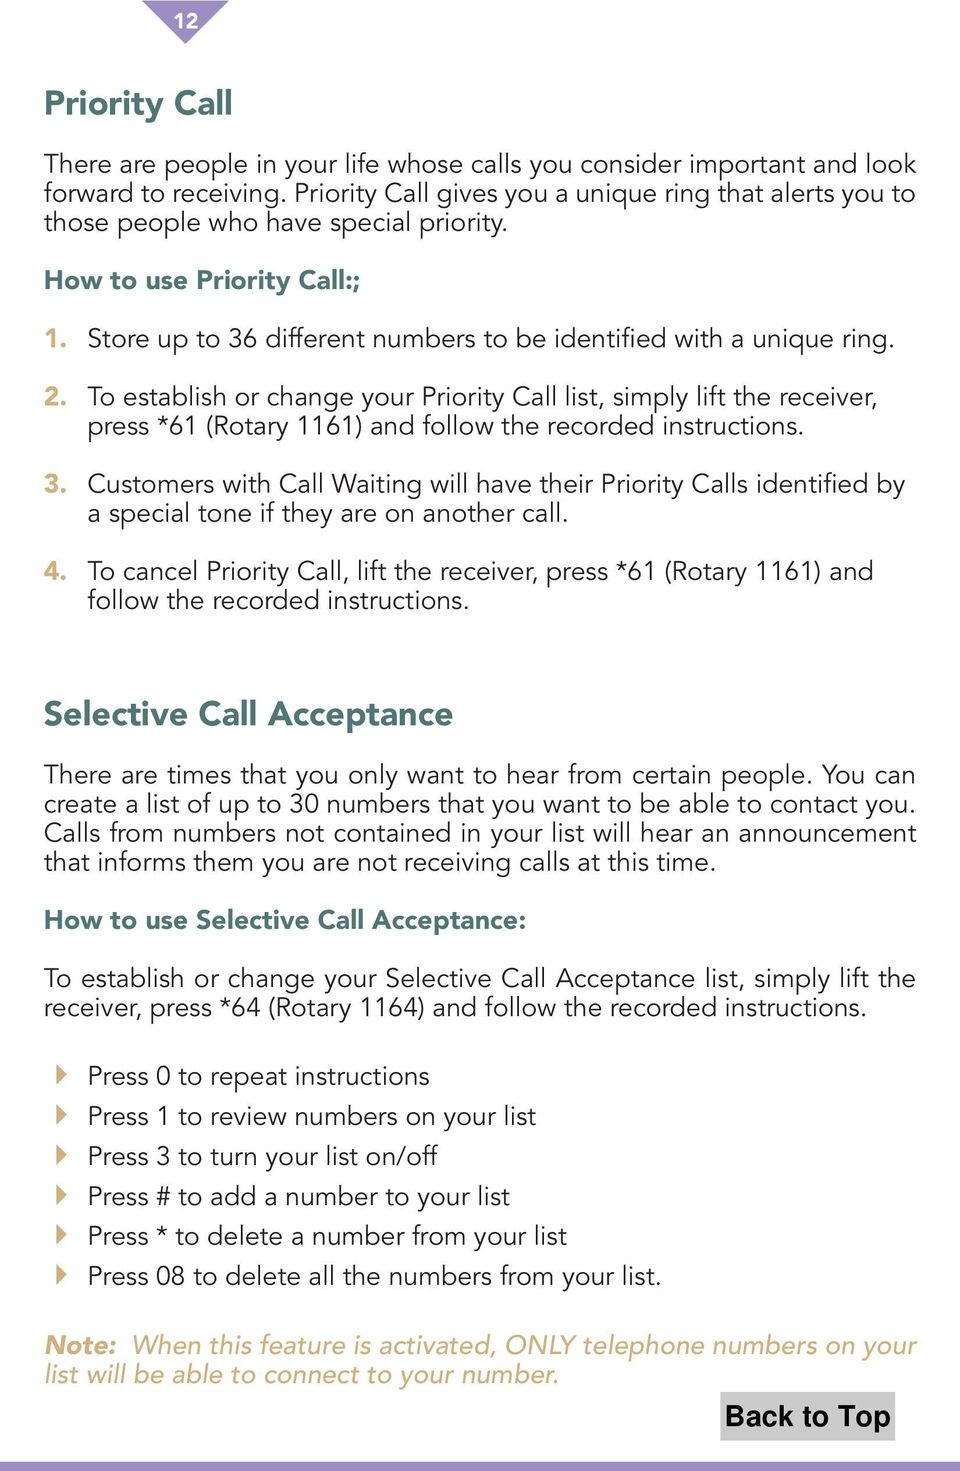 To establish or change your Priority Call list, simply lift the receiver, press *61 (Rotary 1161) and follow the recorded instructions. 3.